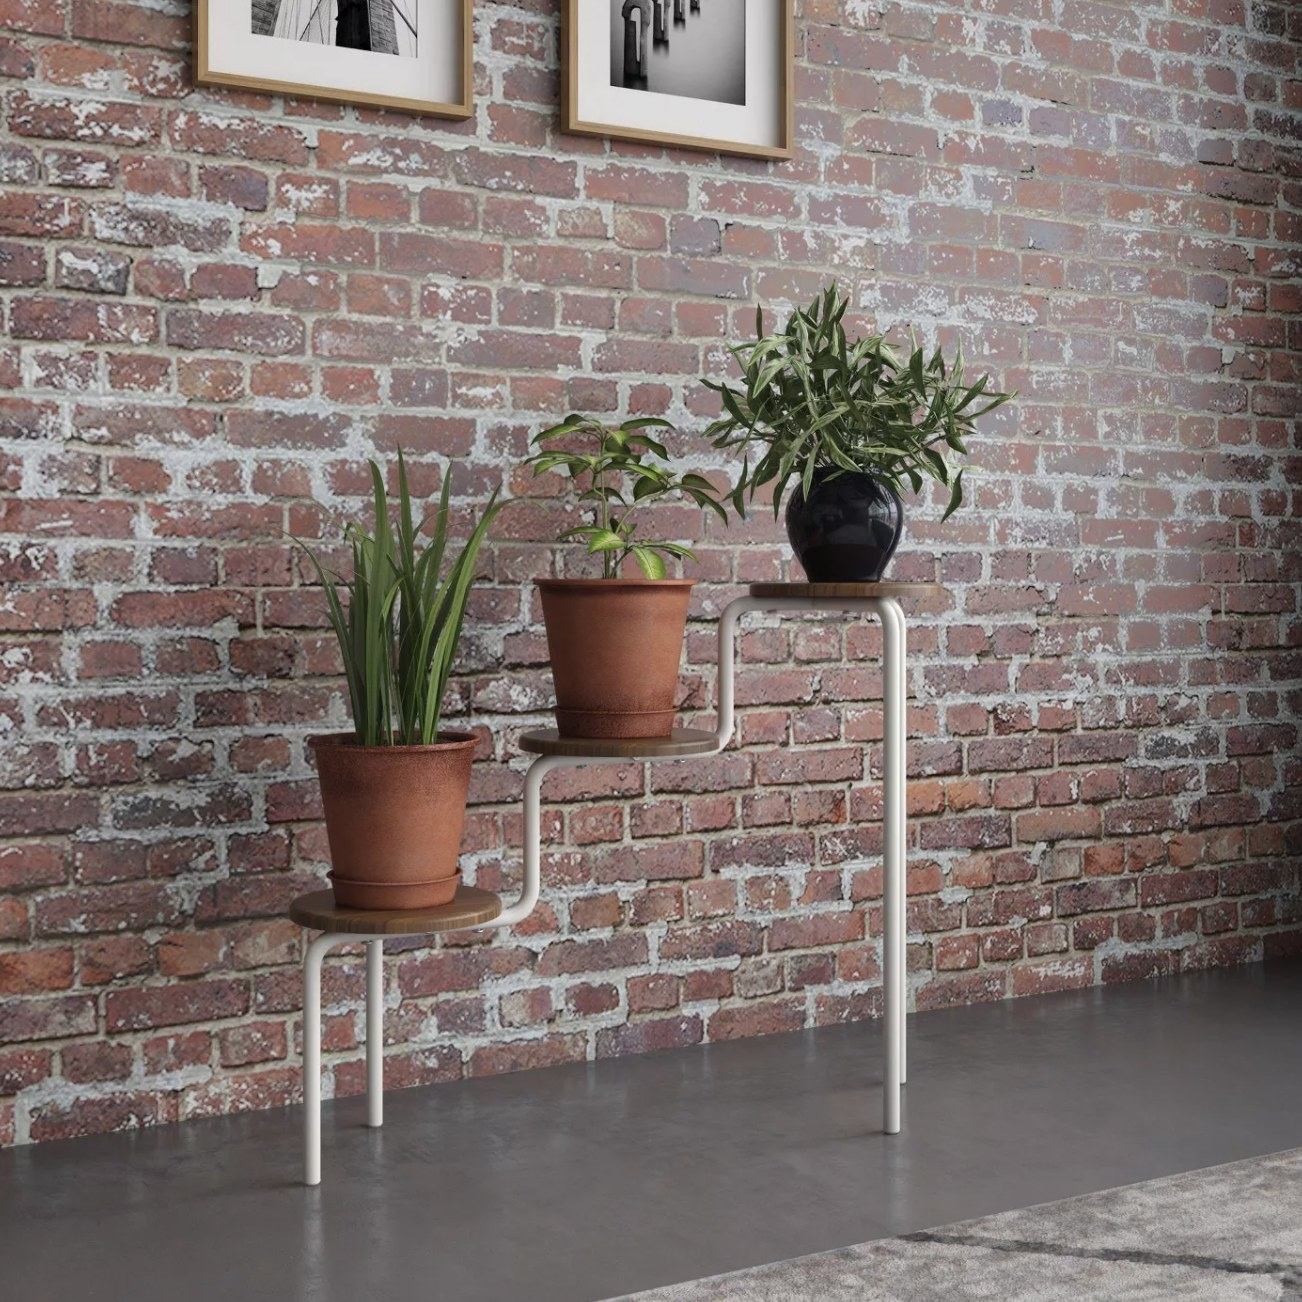 The plant stand with three plants on each tier